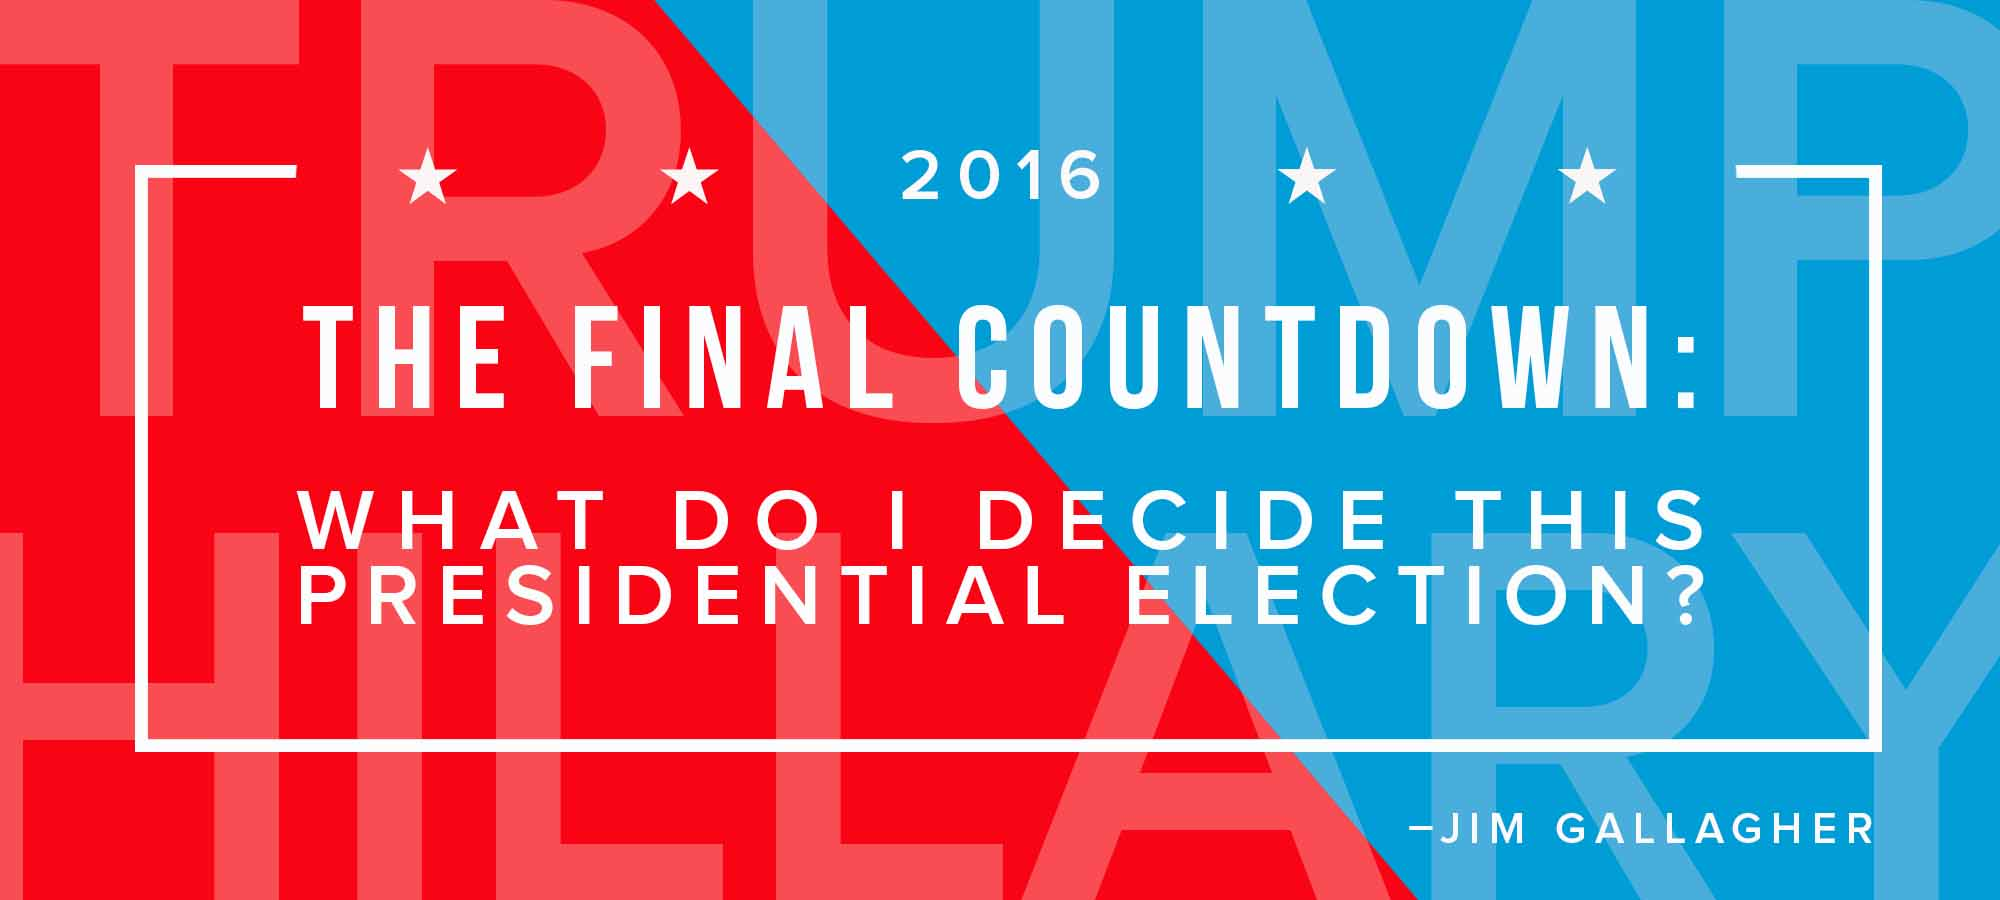 The Final Countdown: What Do I Decide This Presidential Election?